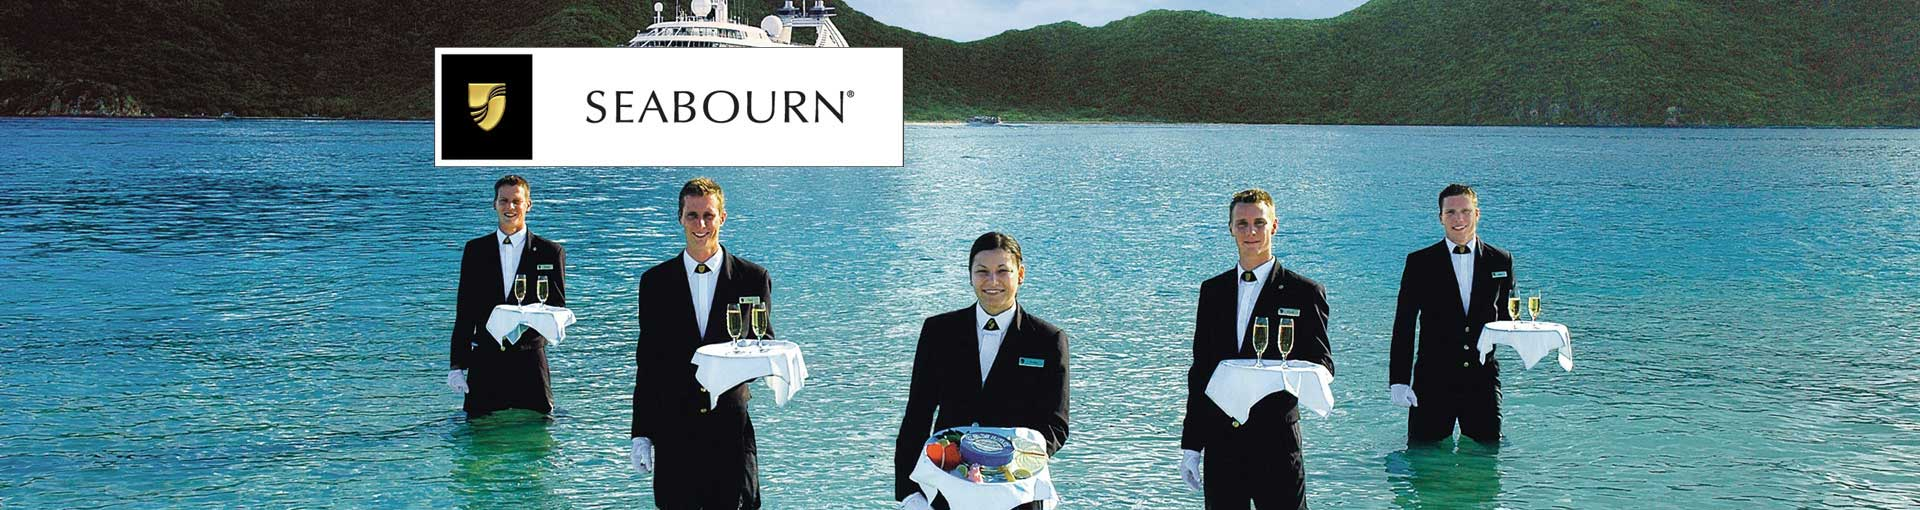 Already Booked with Seabourn Cruise Line